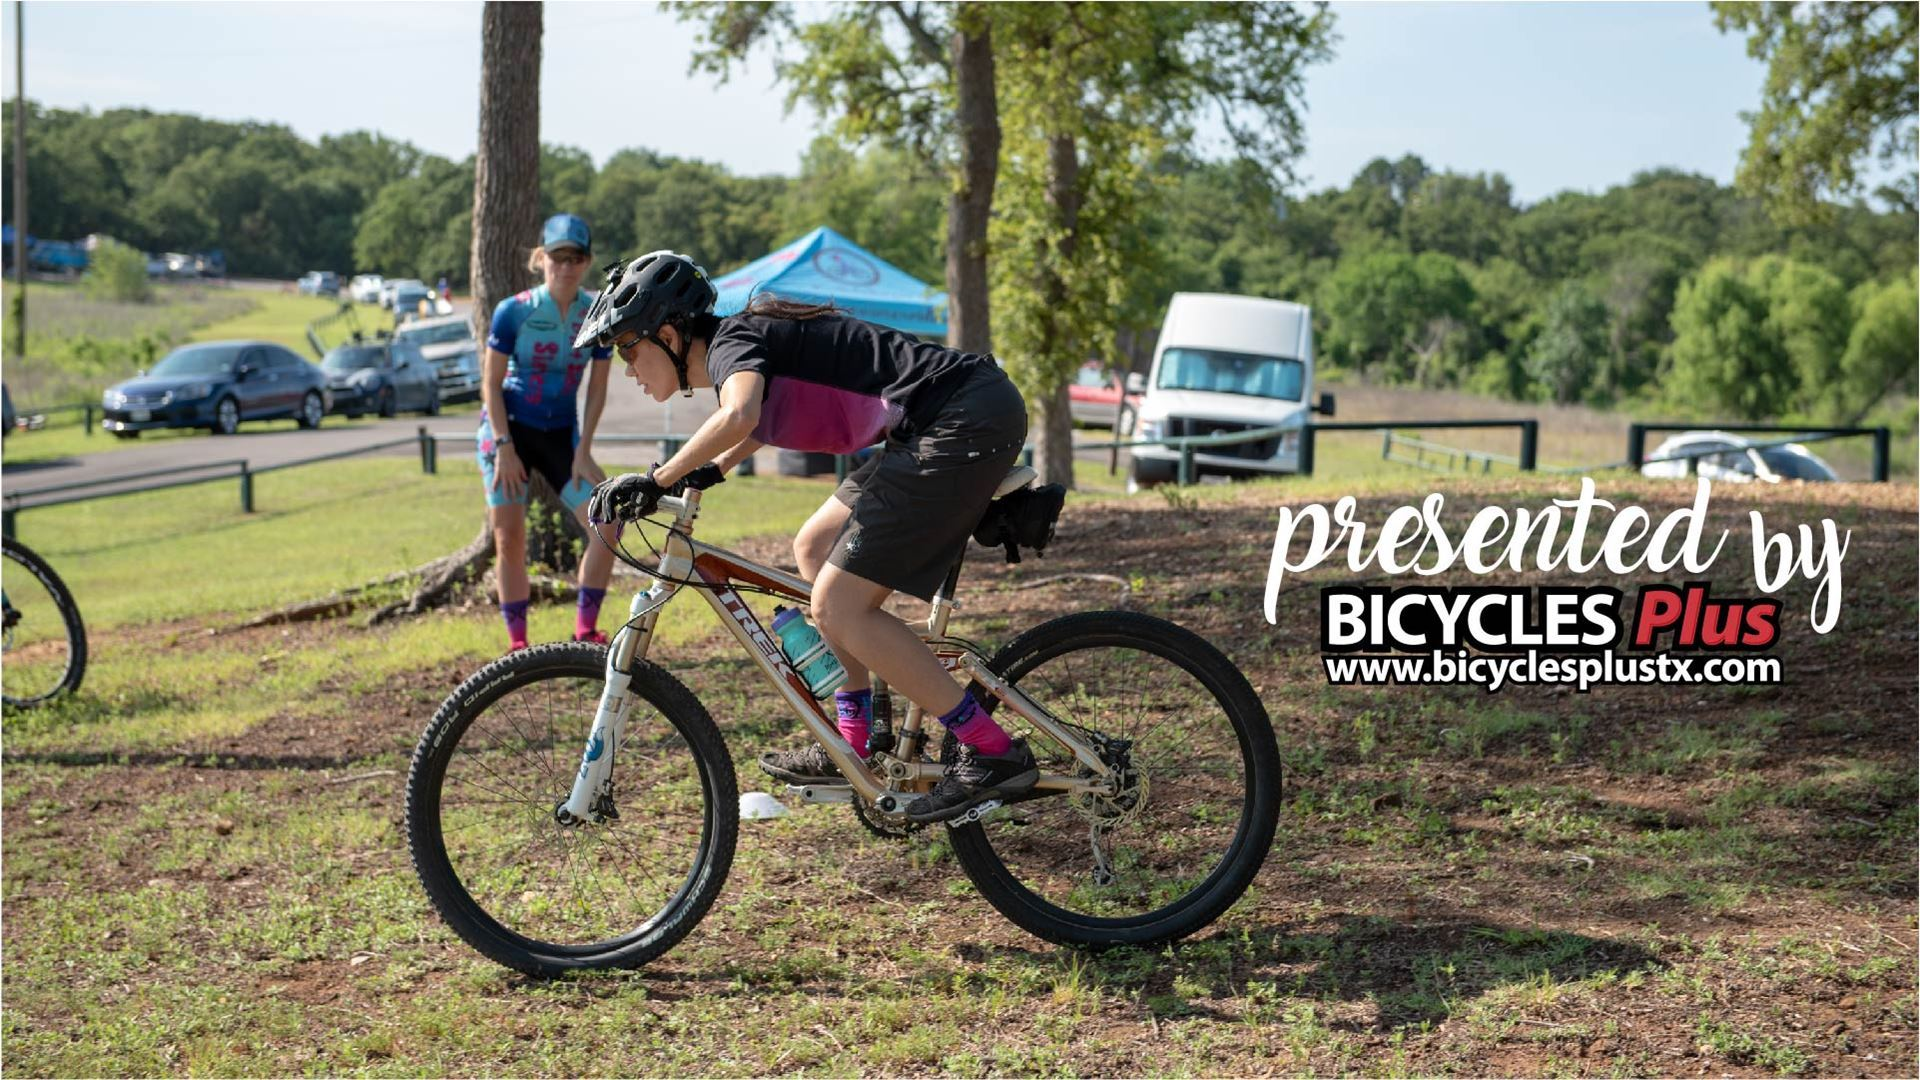 Our Rock Solid Mountain Bike Foundations Clinic p b by Bicycles Plus is  perfect for women who are seeking instruction in essential riding skills  that will ... 8e6fad036